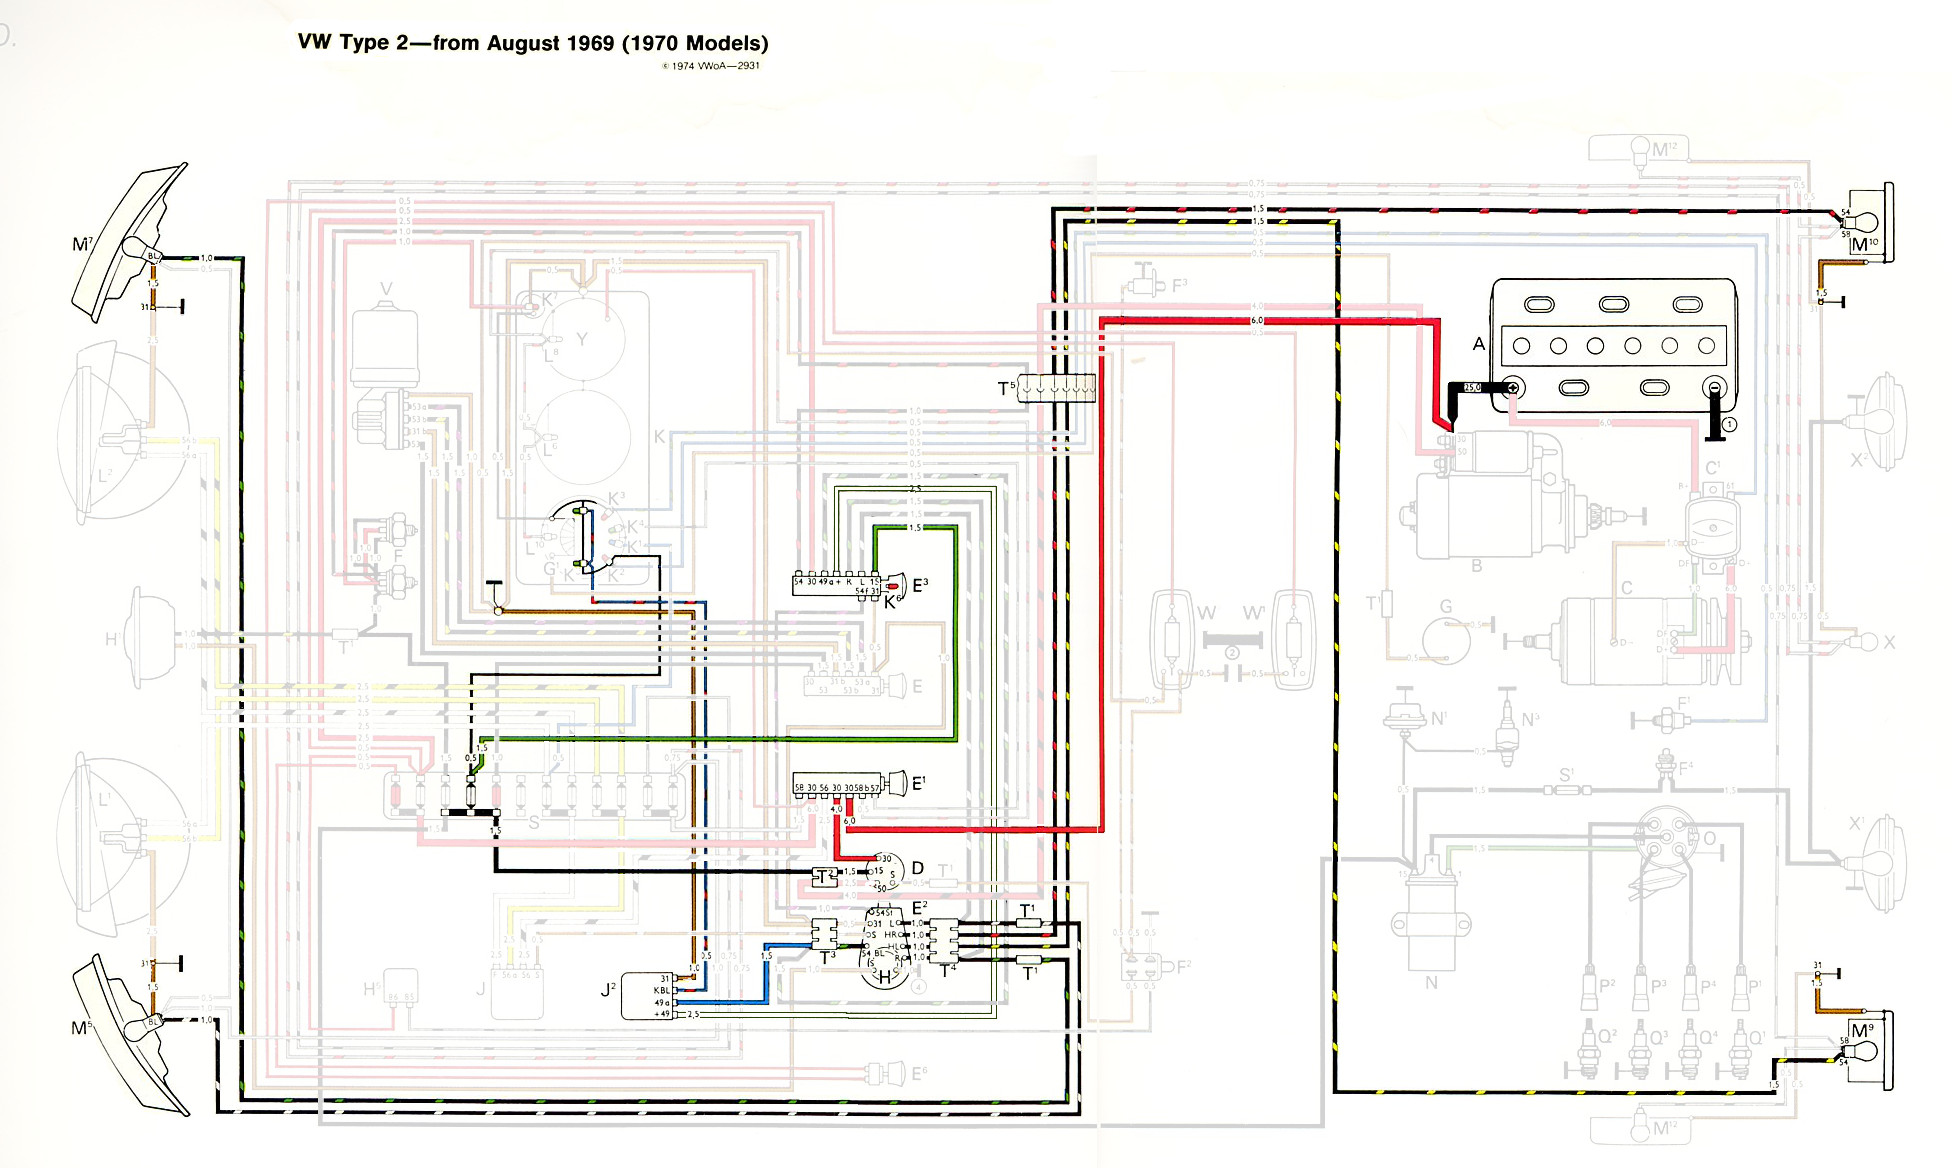 Type 2 Wiring Diagrams Diagram For 1964 Vw Bus